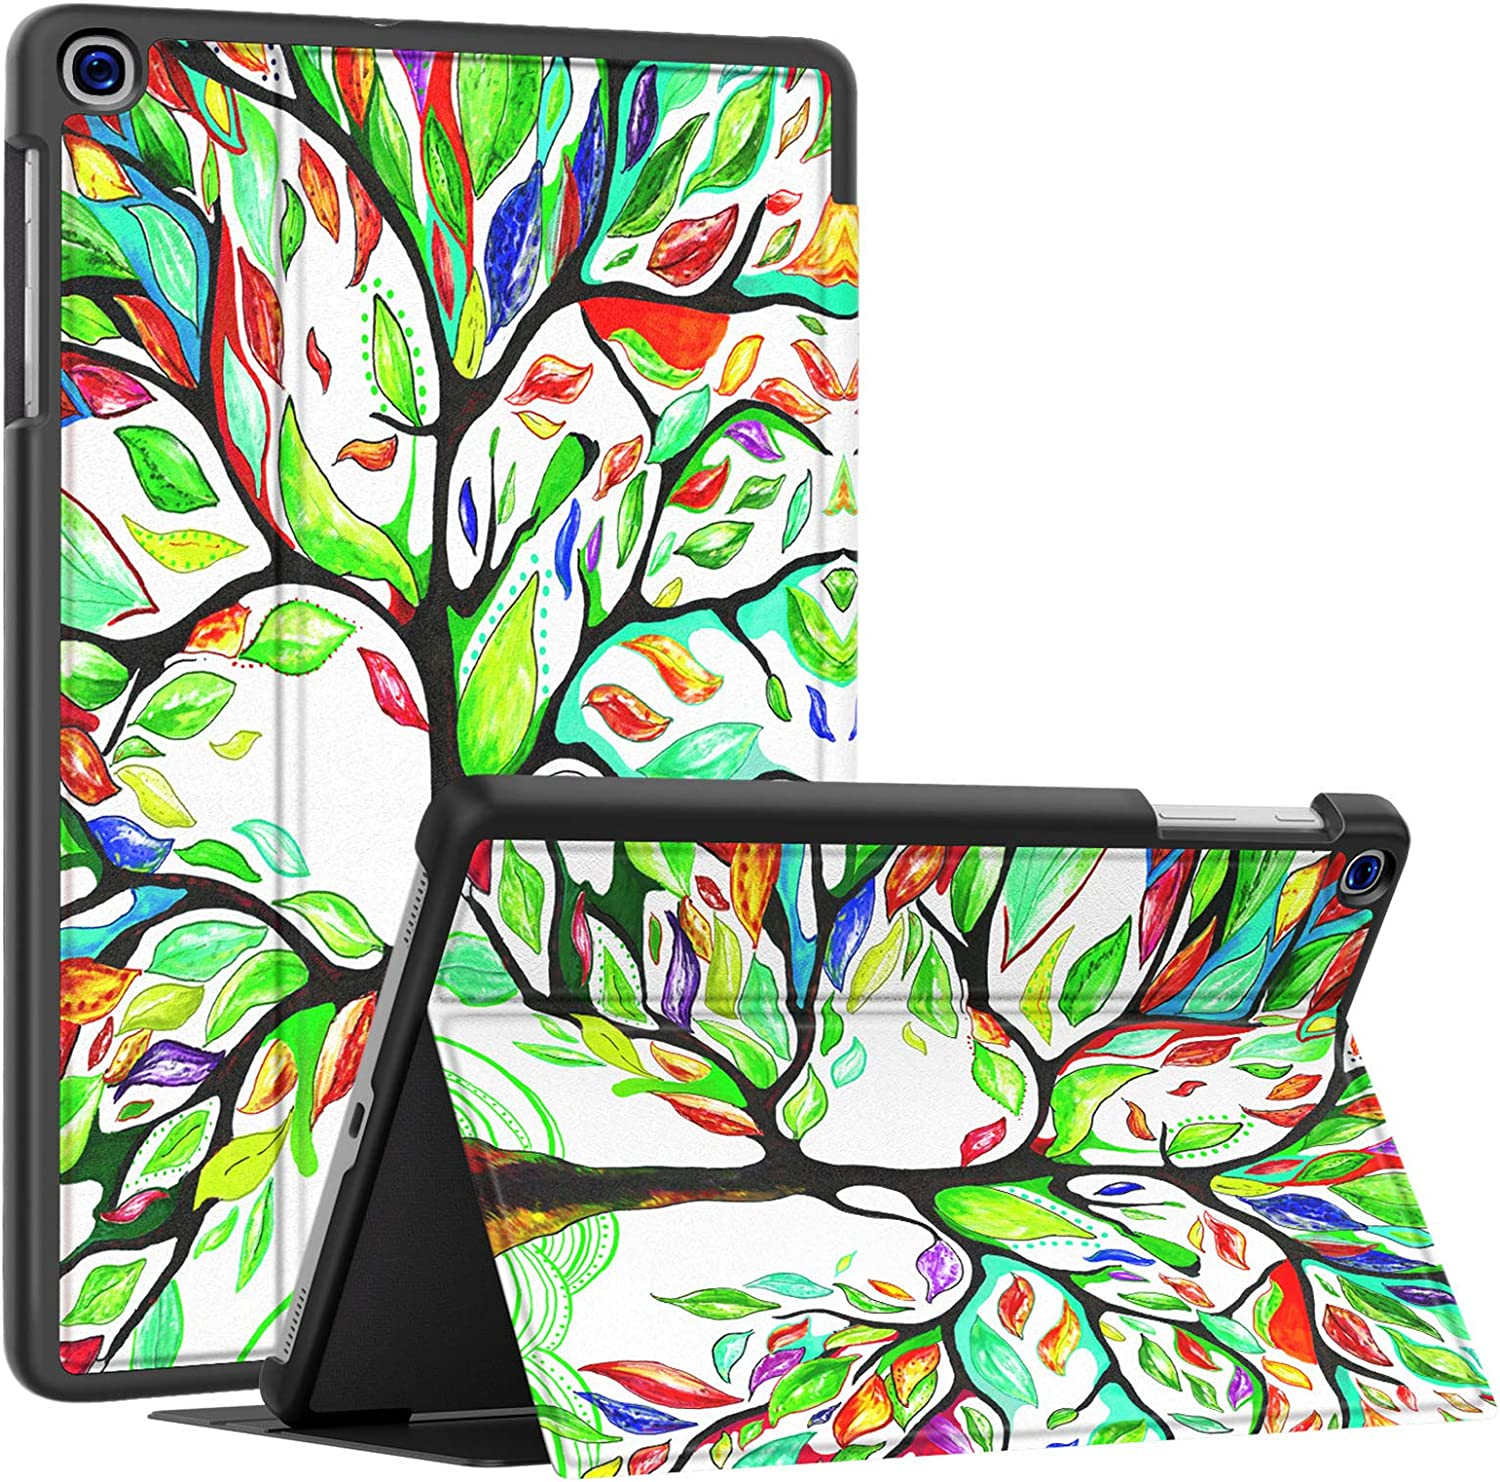 Soke Galaxy Tab A 10.1 Case 2019, Premium Shock Proof Stand Folio Case,Multi- Viewing Angles, Soft TPU Back Cover for Samsung Galaxy Tab A 10.1 inch Tablet [SM-T510/T515/T517],Lucky Tree